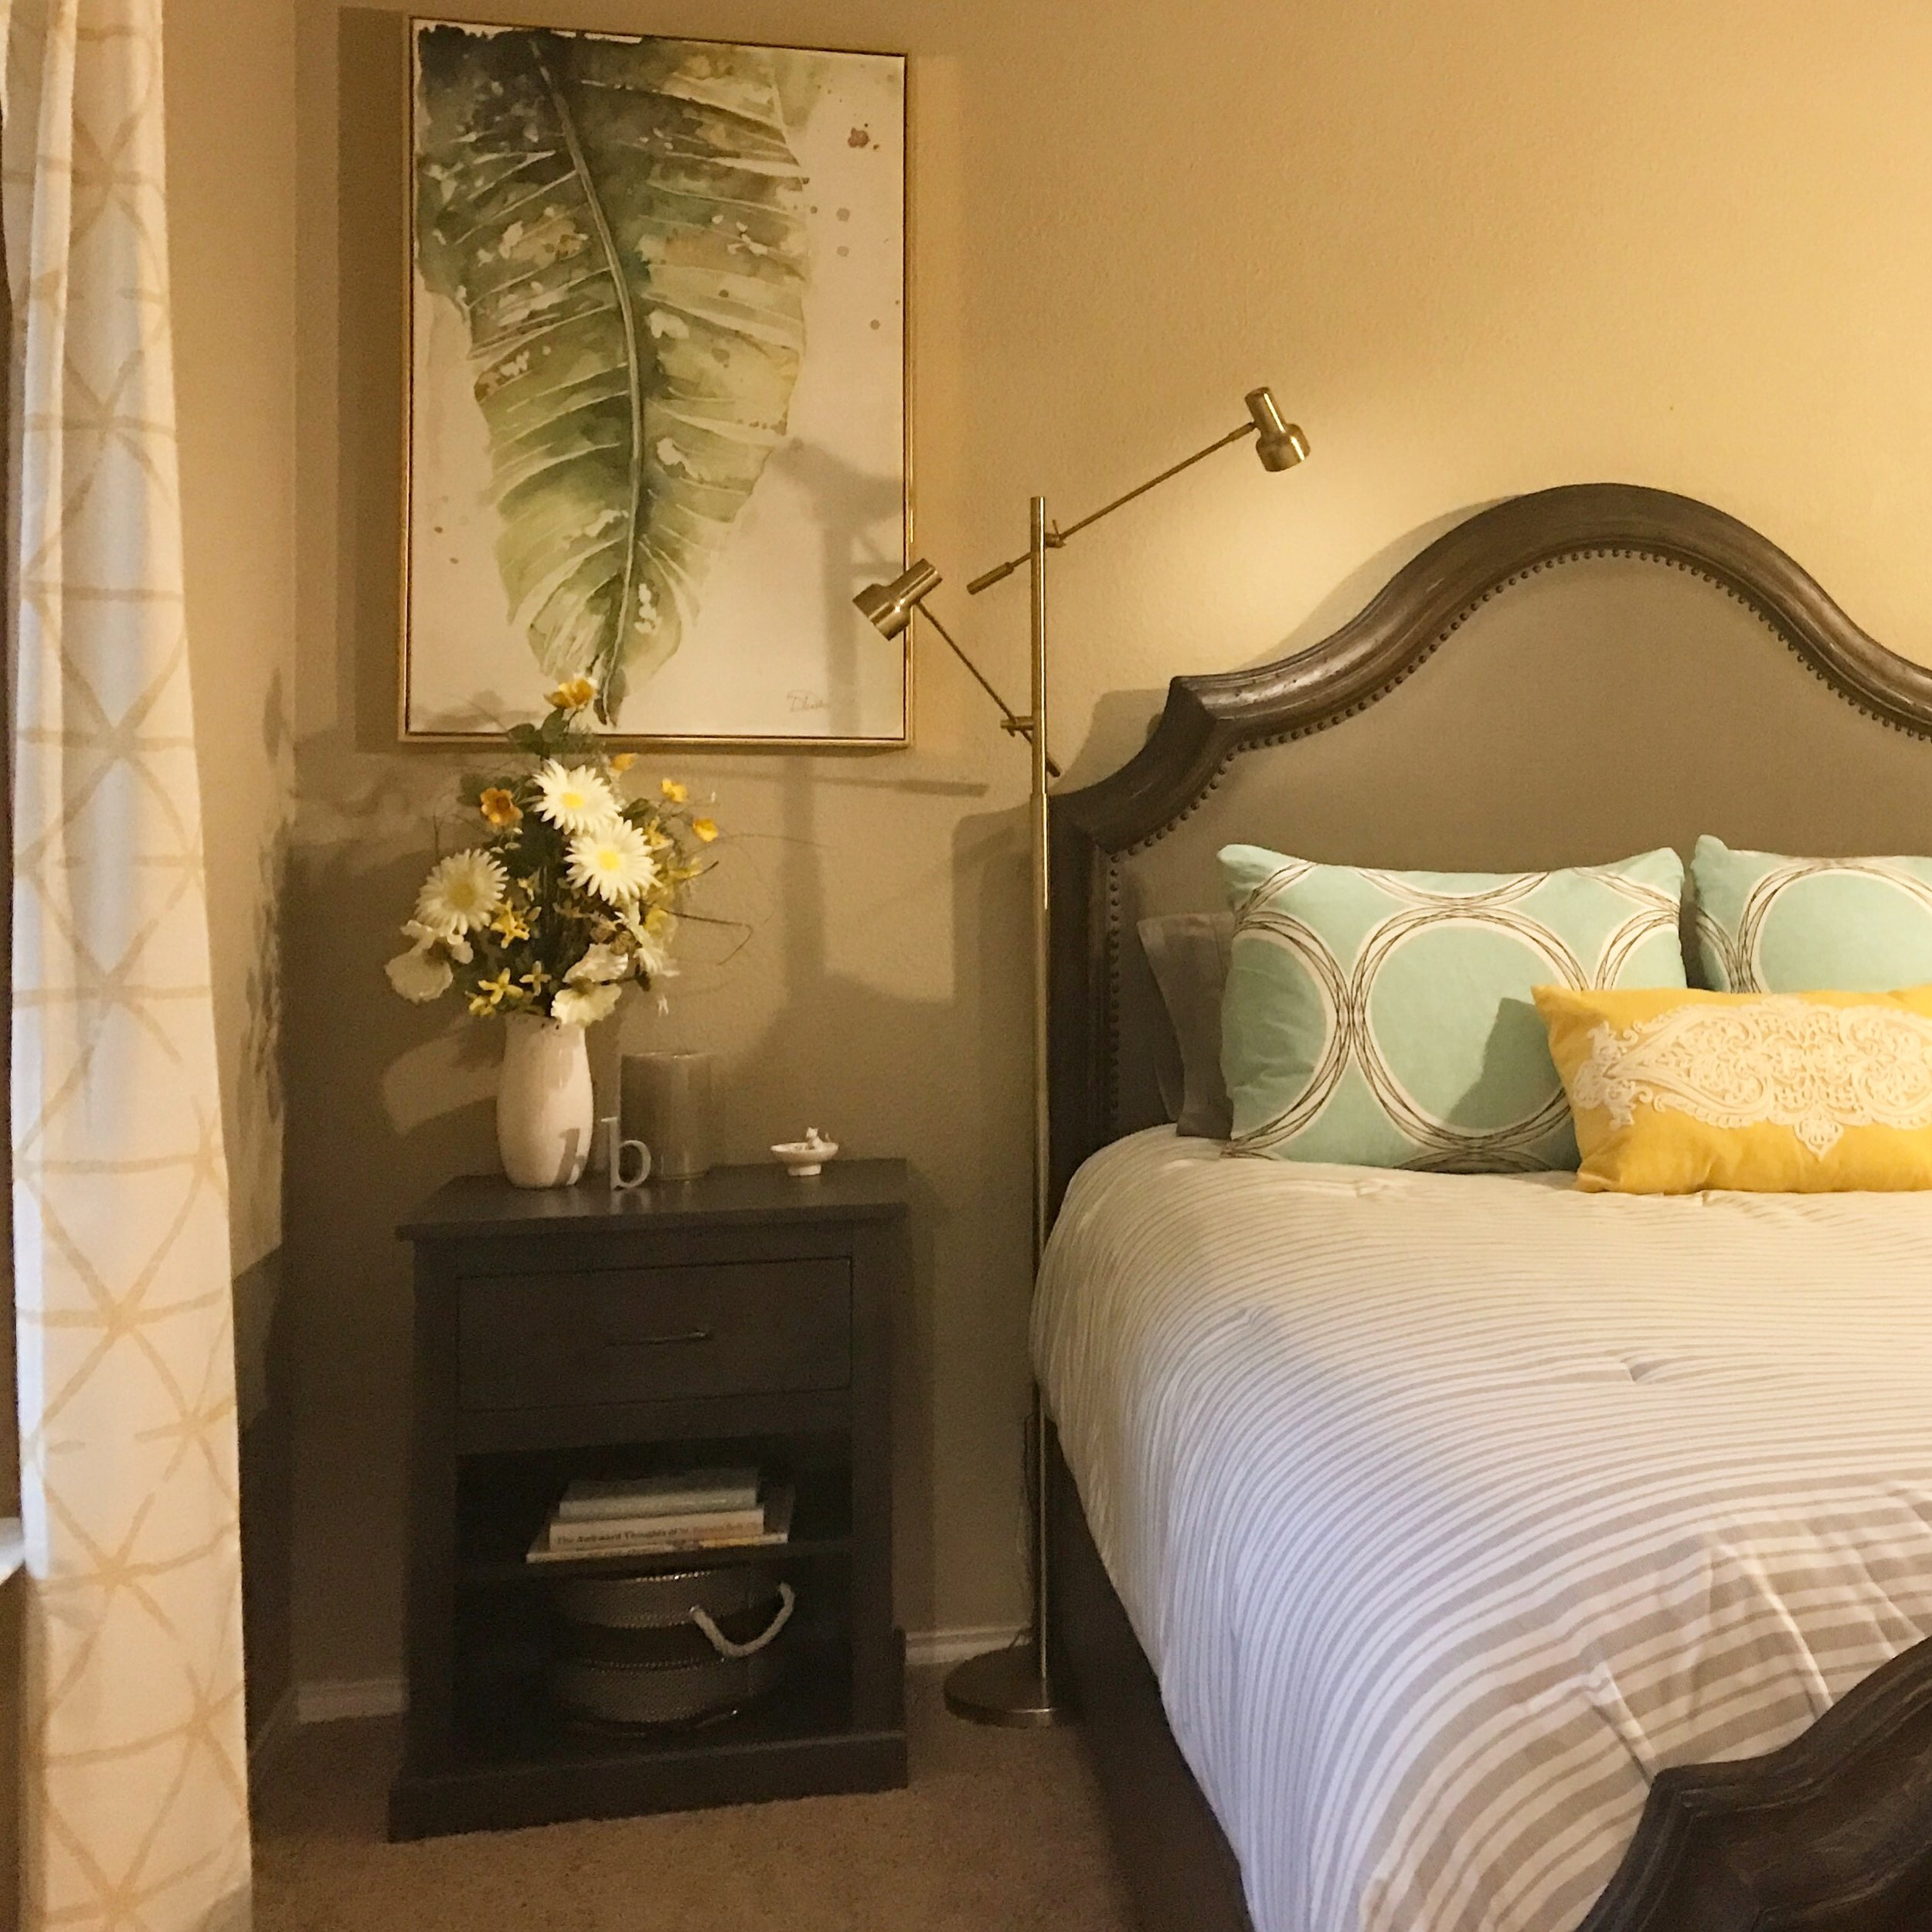 Full Service client: Guest bedroom